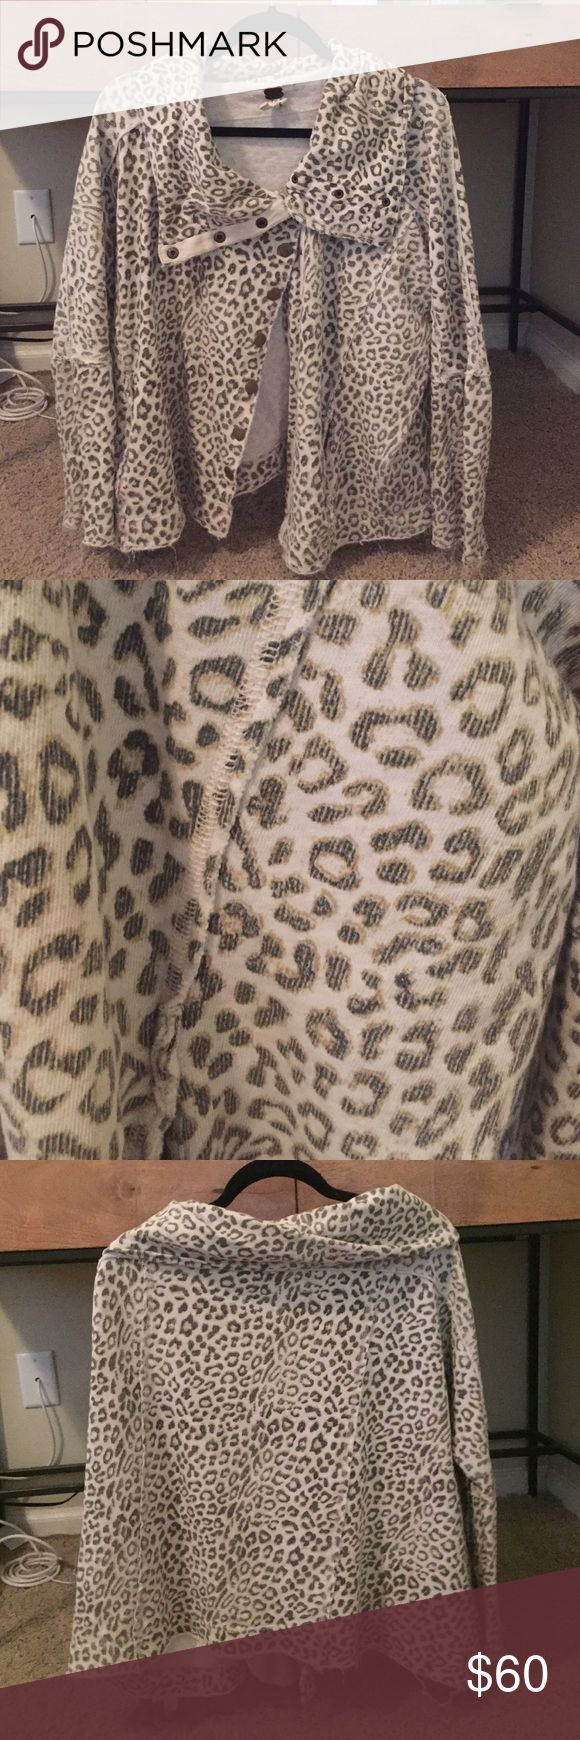 Free People Cheetah Cardigan/Button Up Sweater Free People Cheetah Cardigan/Button Up Sweater - Size Small Free People Jackets & Coats